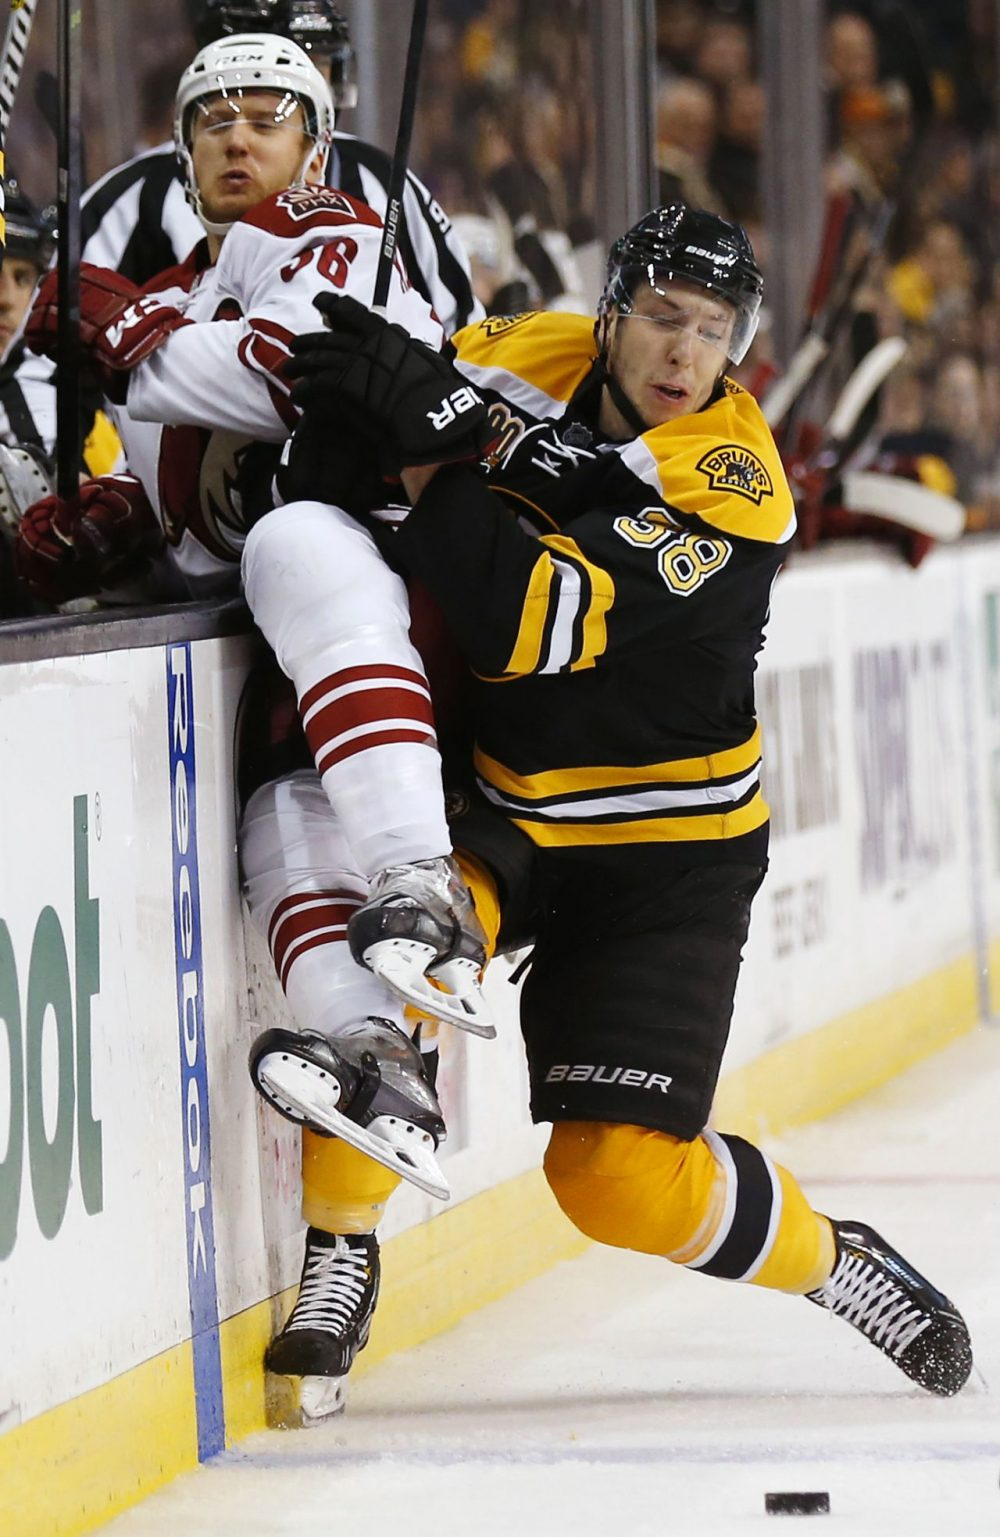 Boston Bruins' Jordan Caron checks Phoenix Coyotes' Rob Klinkhammer into the boards during the third period of Boston's 2-1 win in an NHL hockey game in Boston Thursday, March 13, 2014. (Winslow Townson/AP)